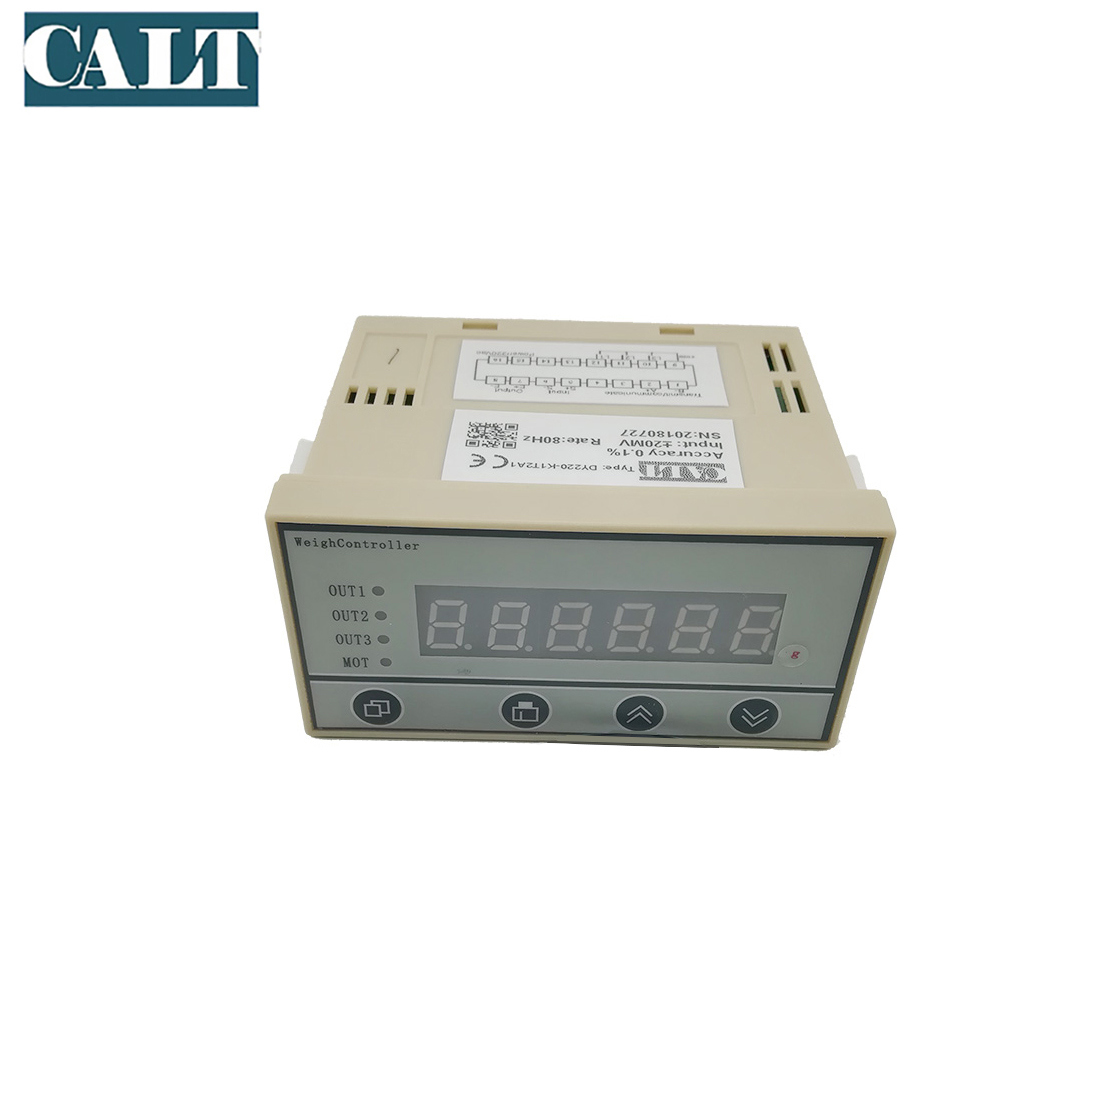 DY220 weight transducer relay weighing control system indicator